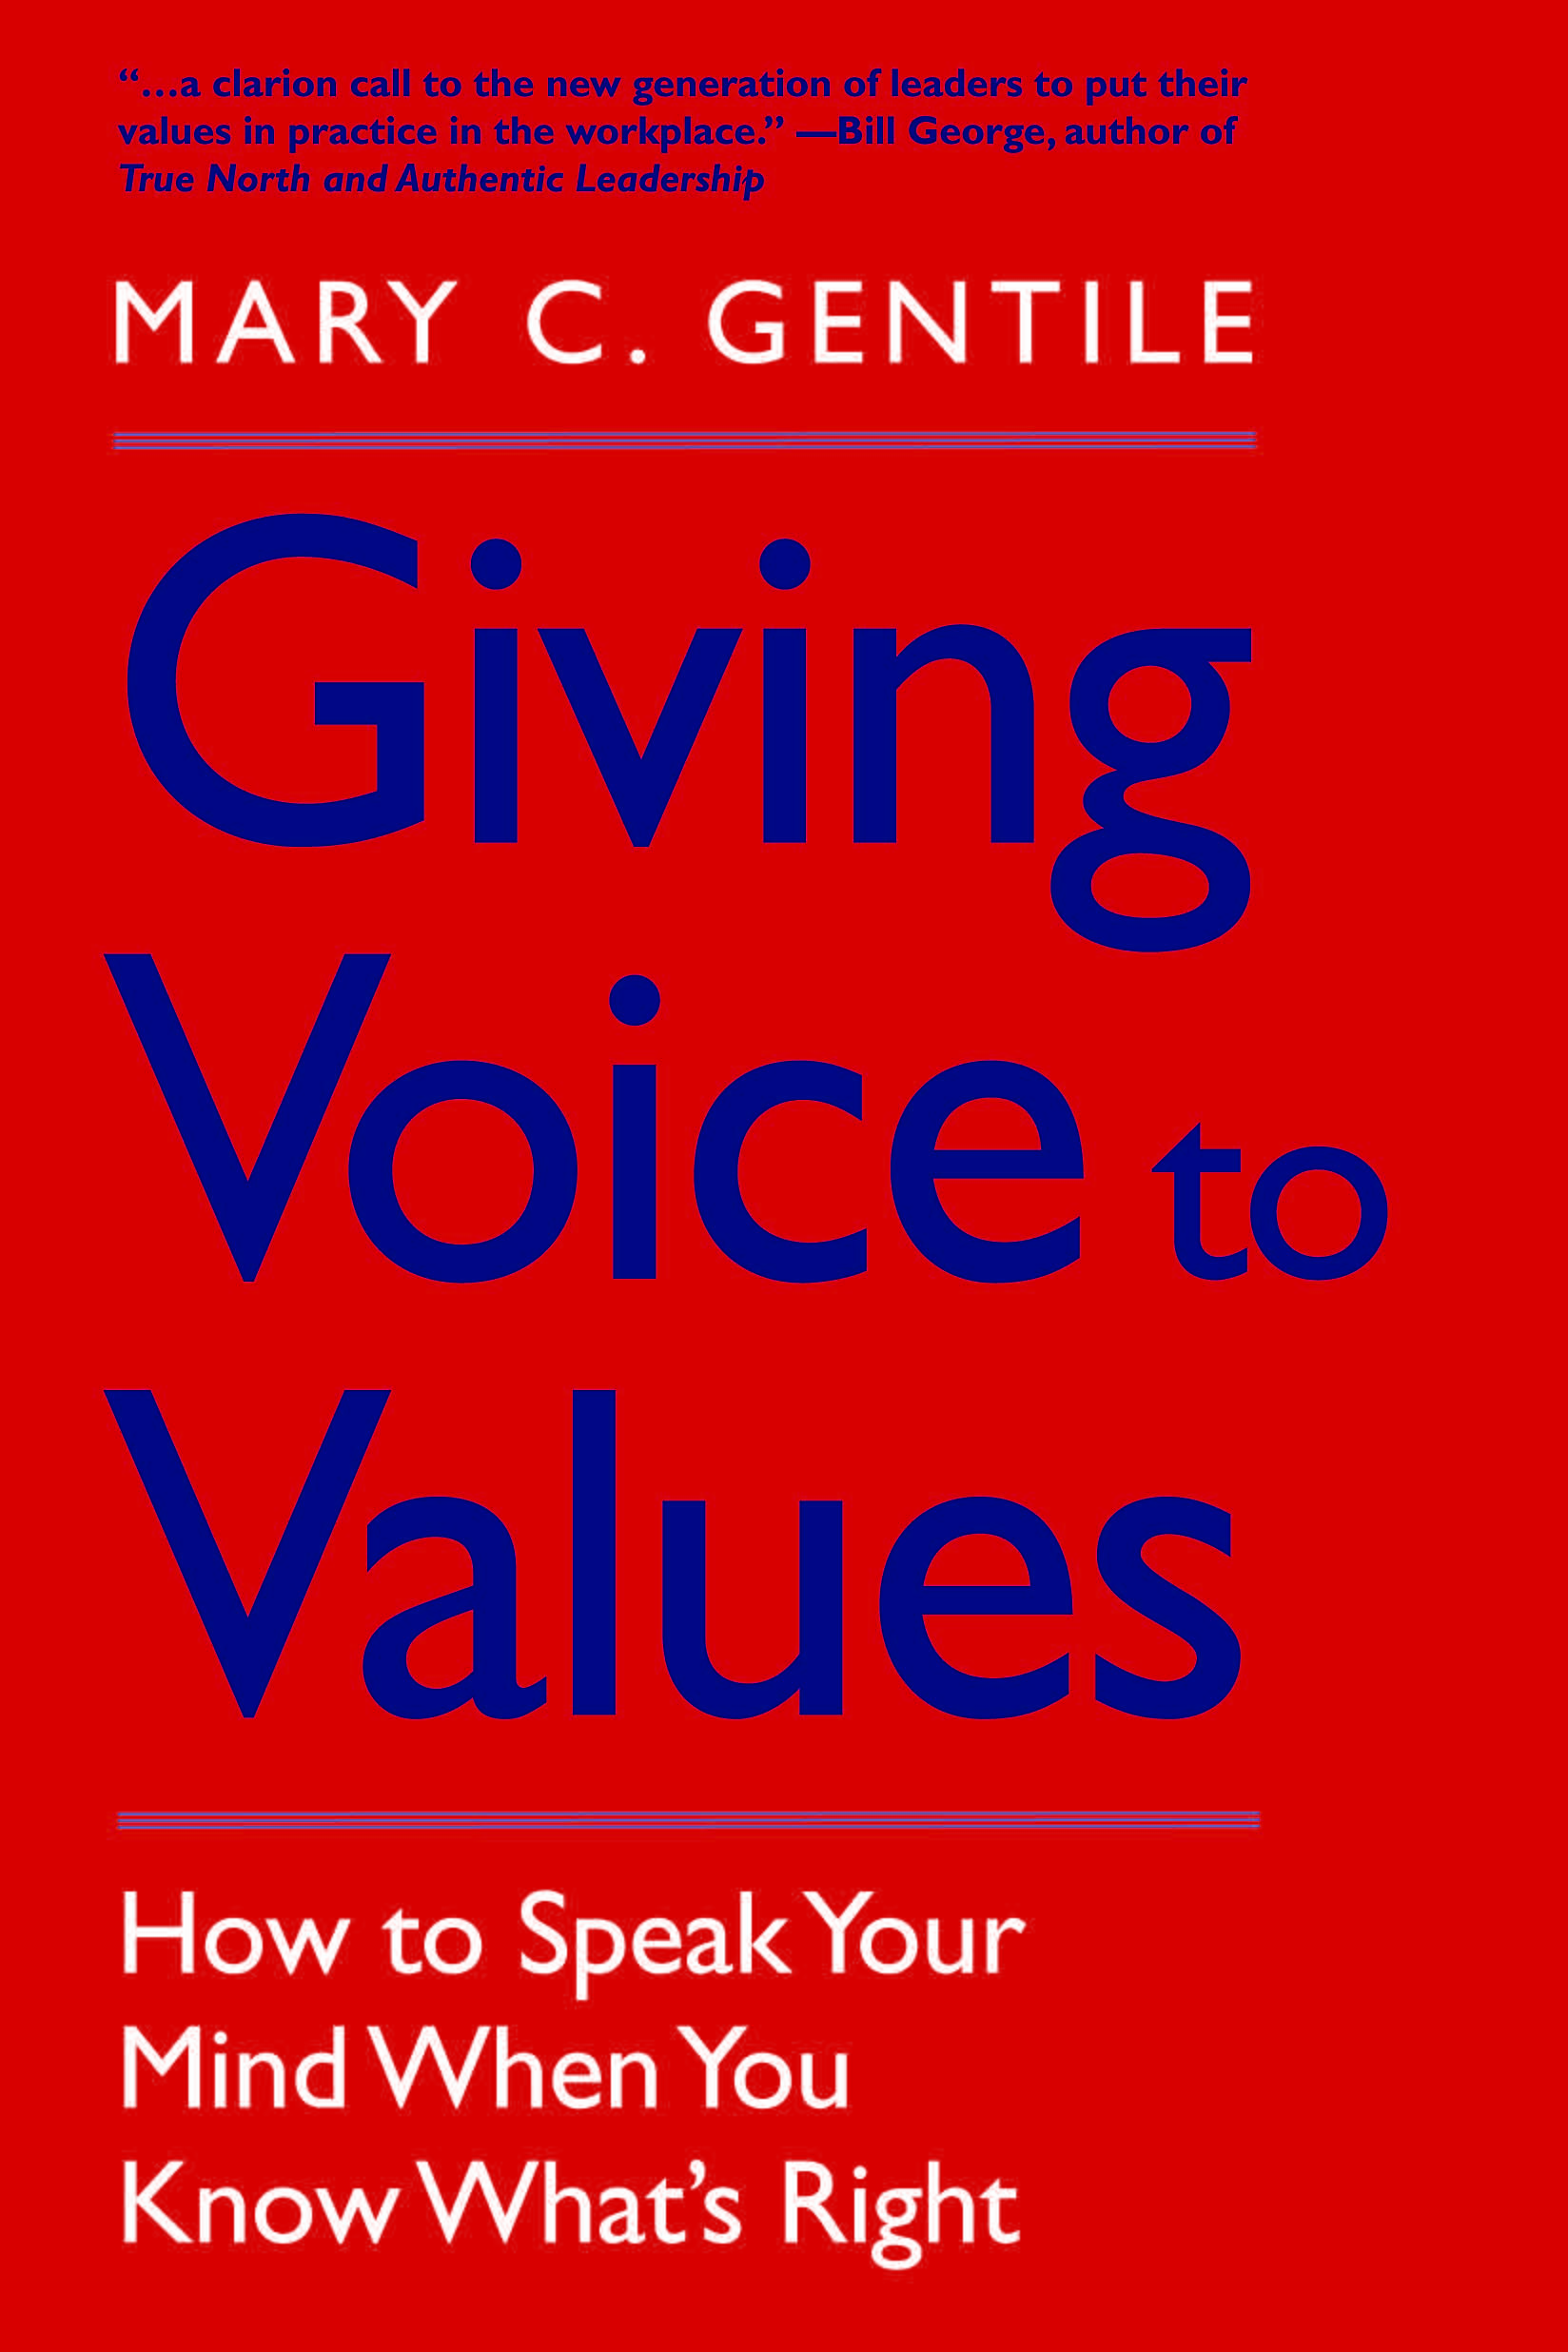 BOOKS: Speaking Up for Values in Business